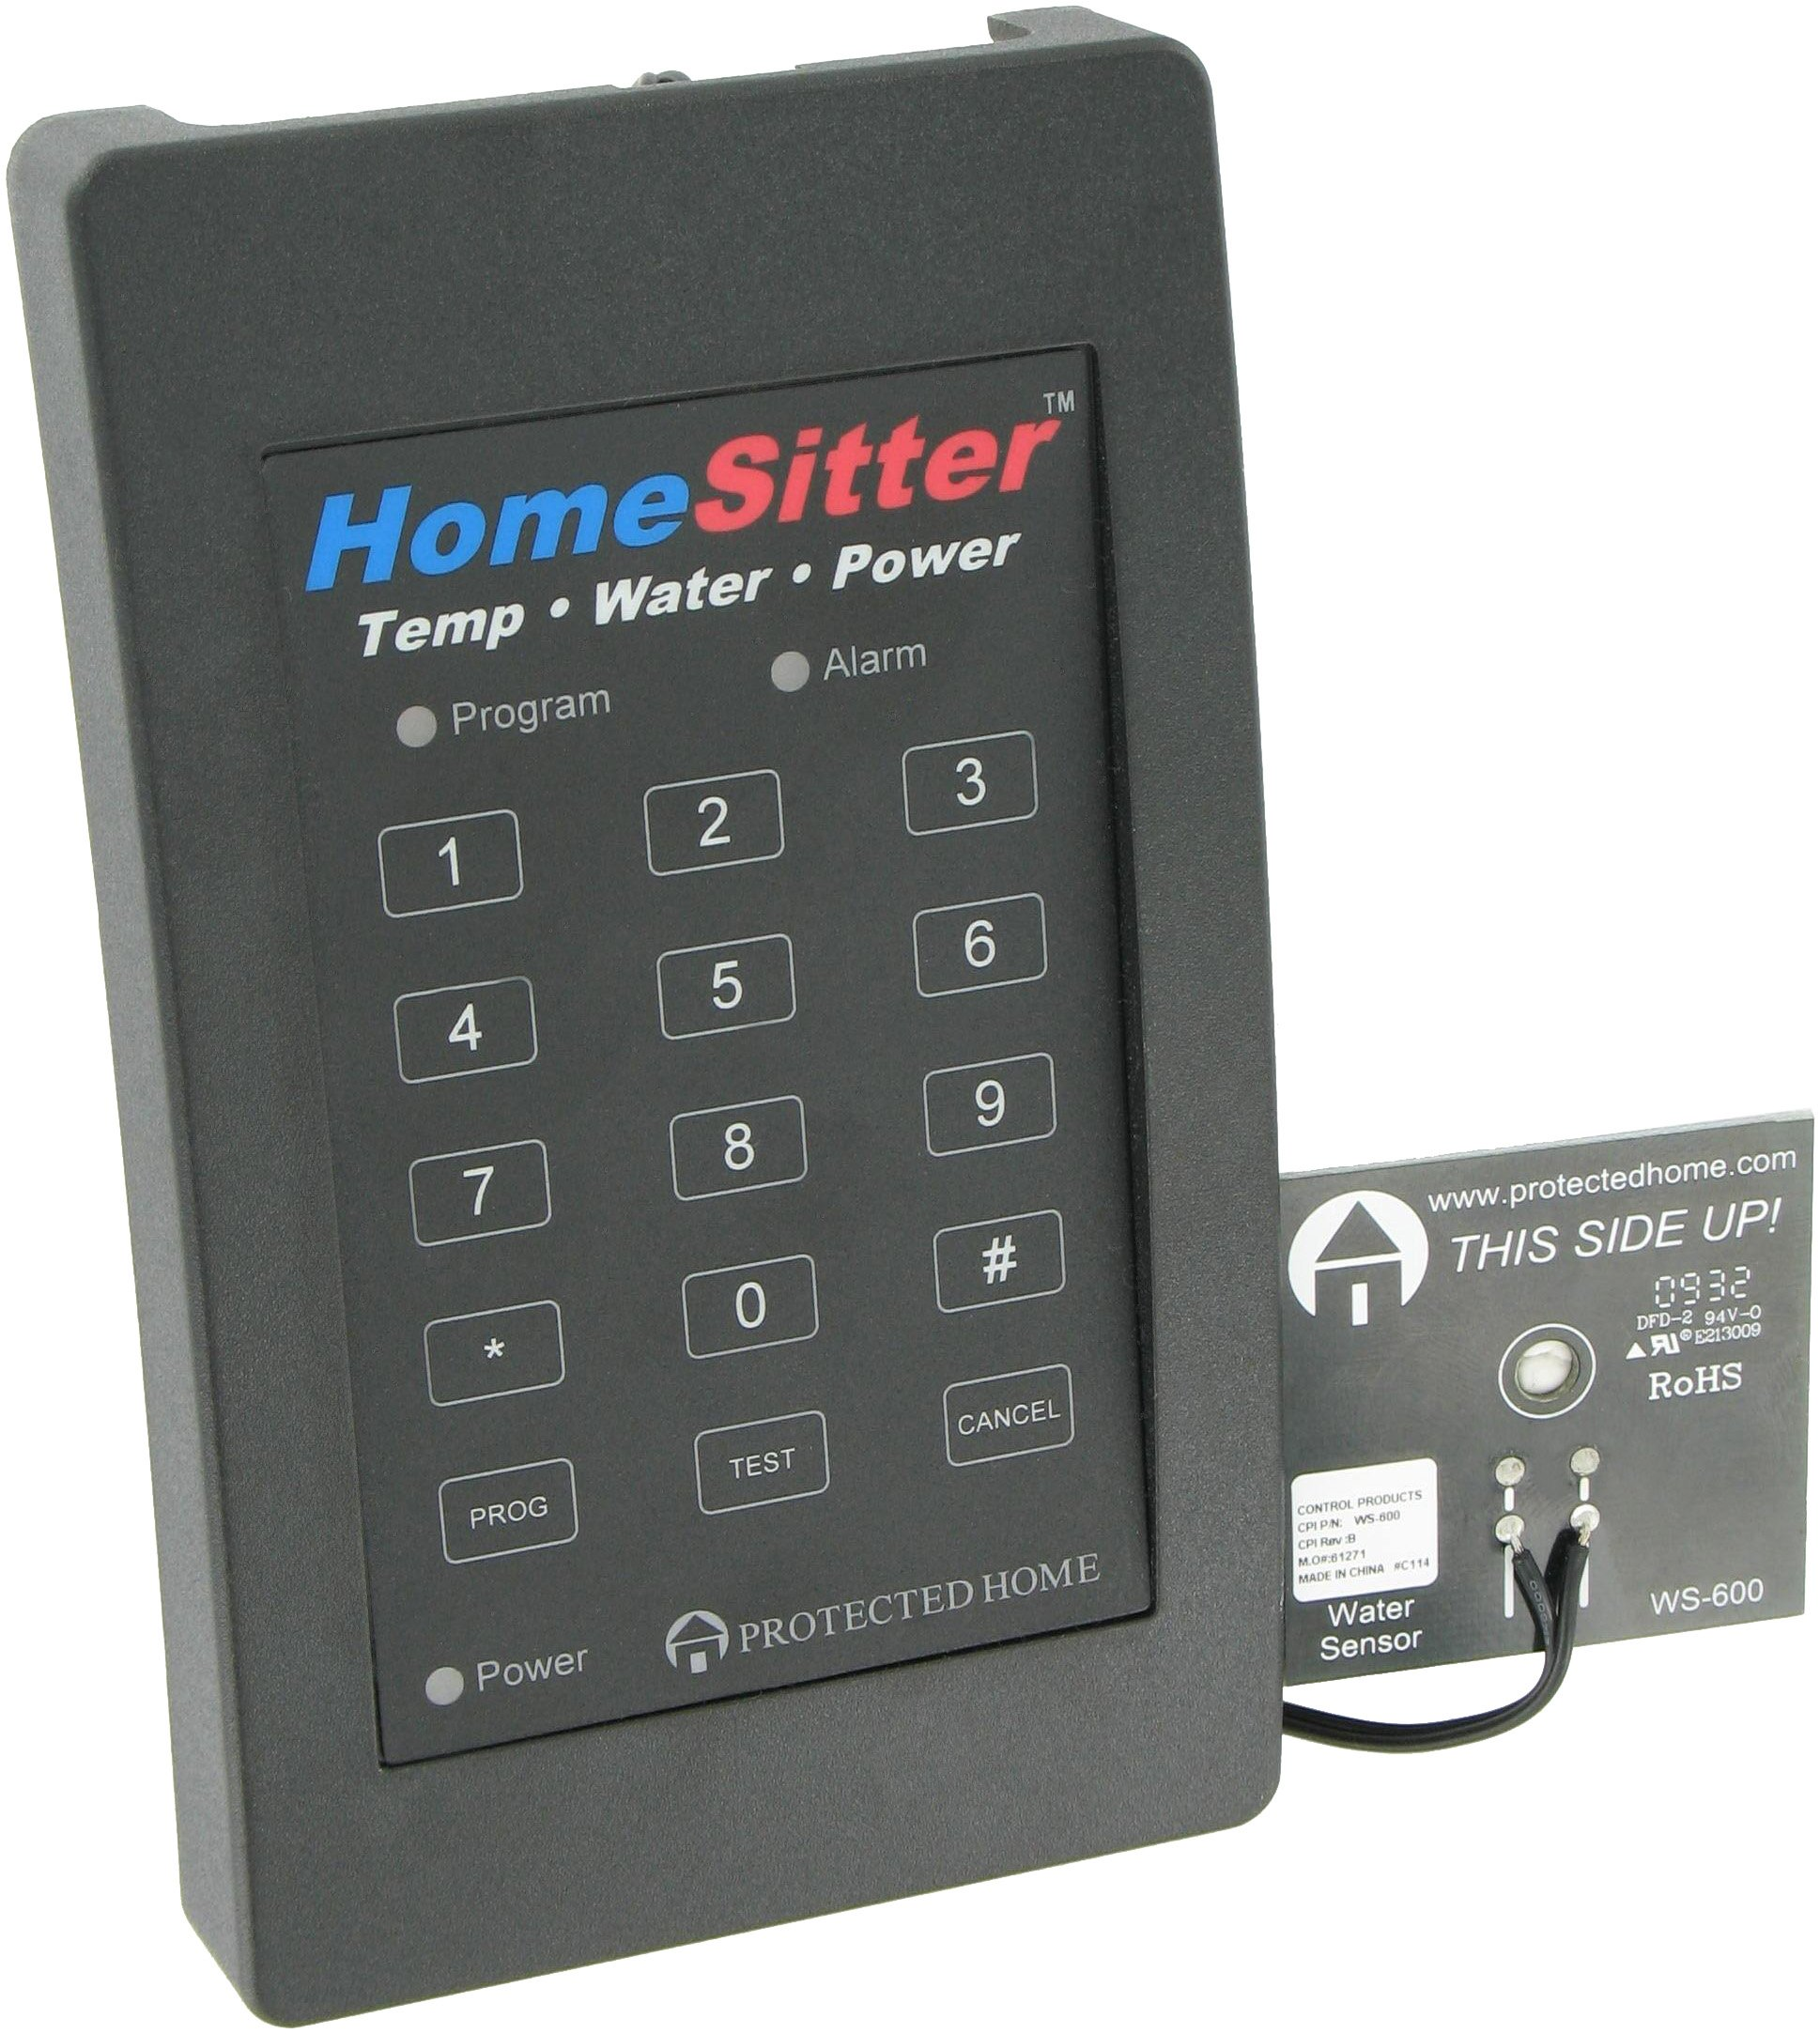 Control Products FreezeAlarm Homesitter Temperature, Water, Power Alarm HS-700 with voice message to up to 3 phone numbers / No monitoring fees by Control Products